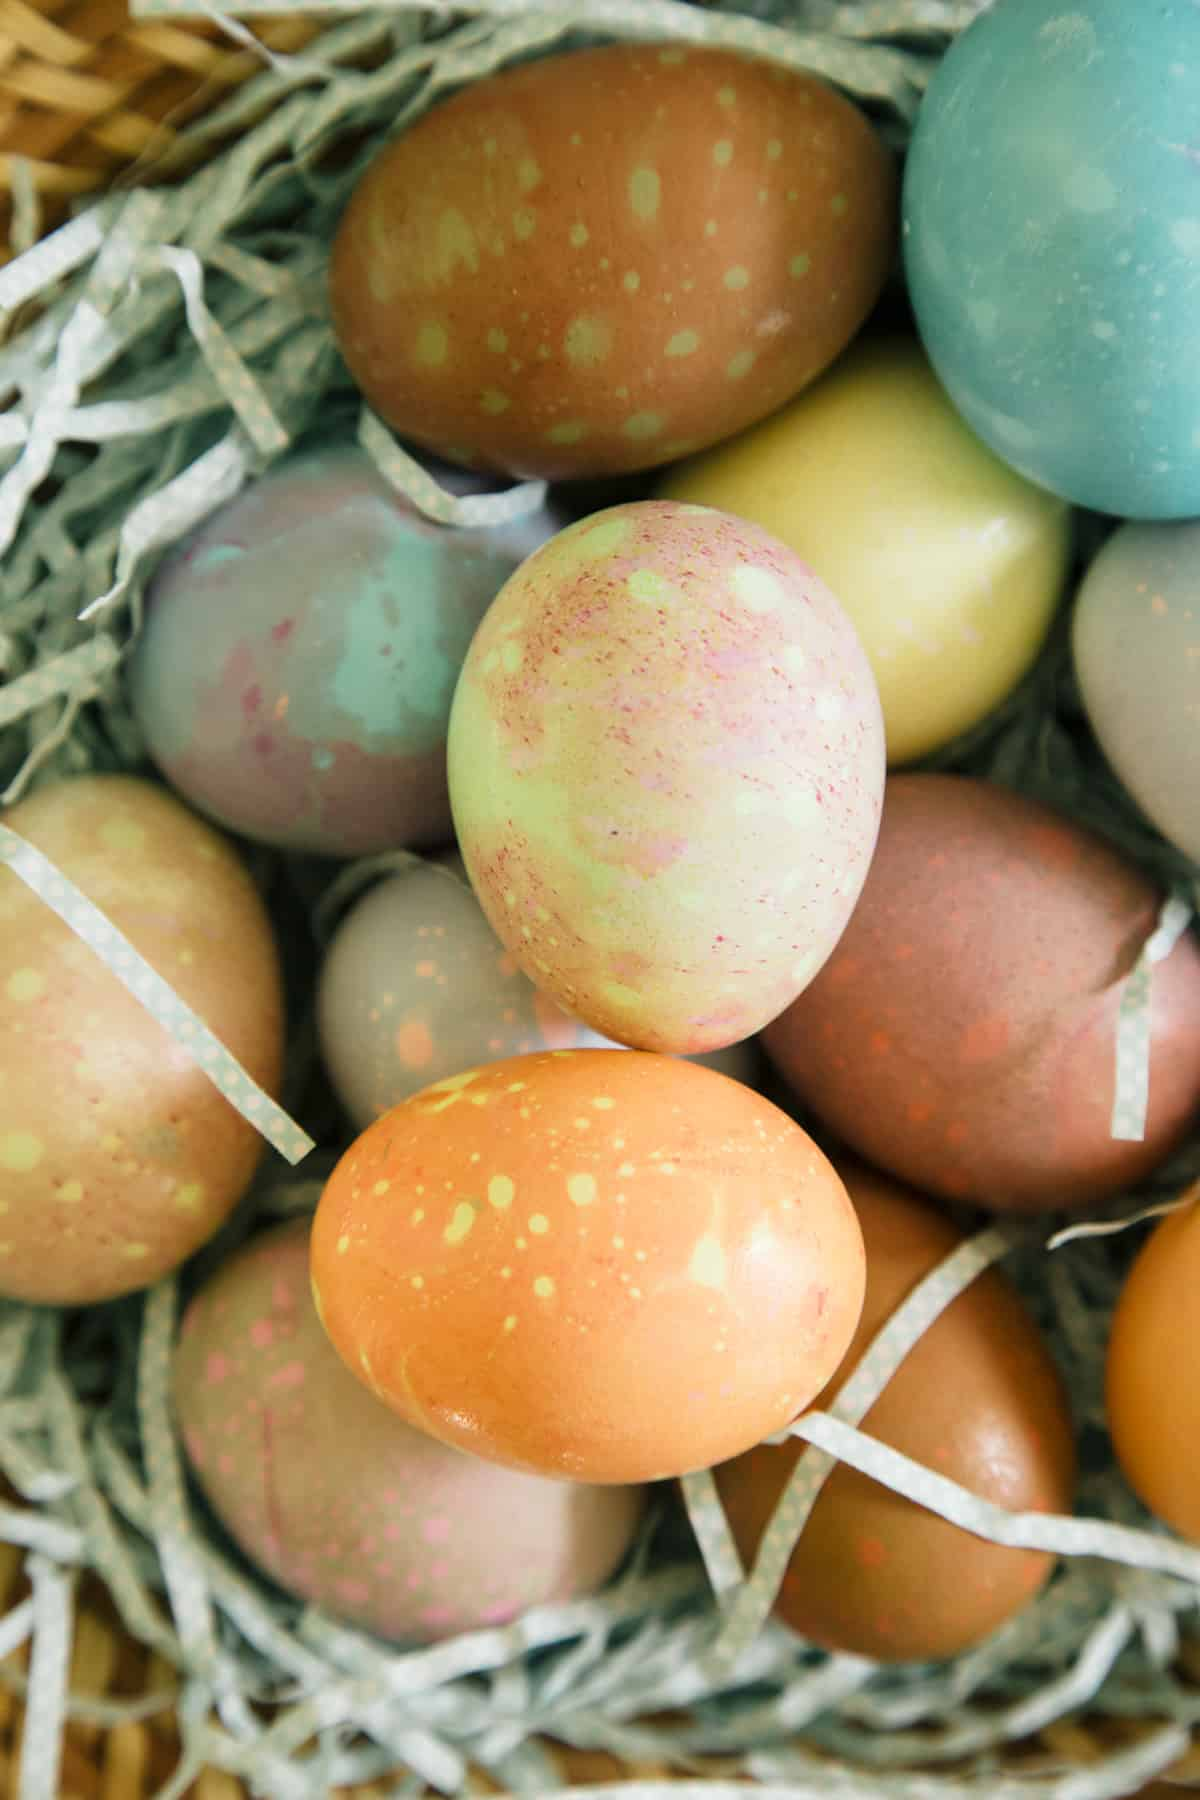 A close up of spotted Easter eggs on Easter grass.